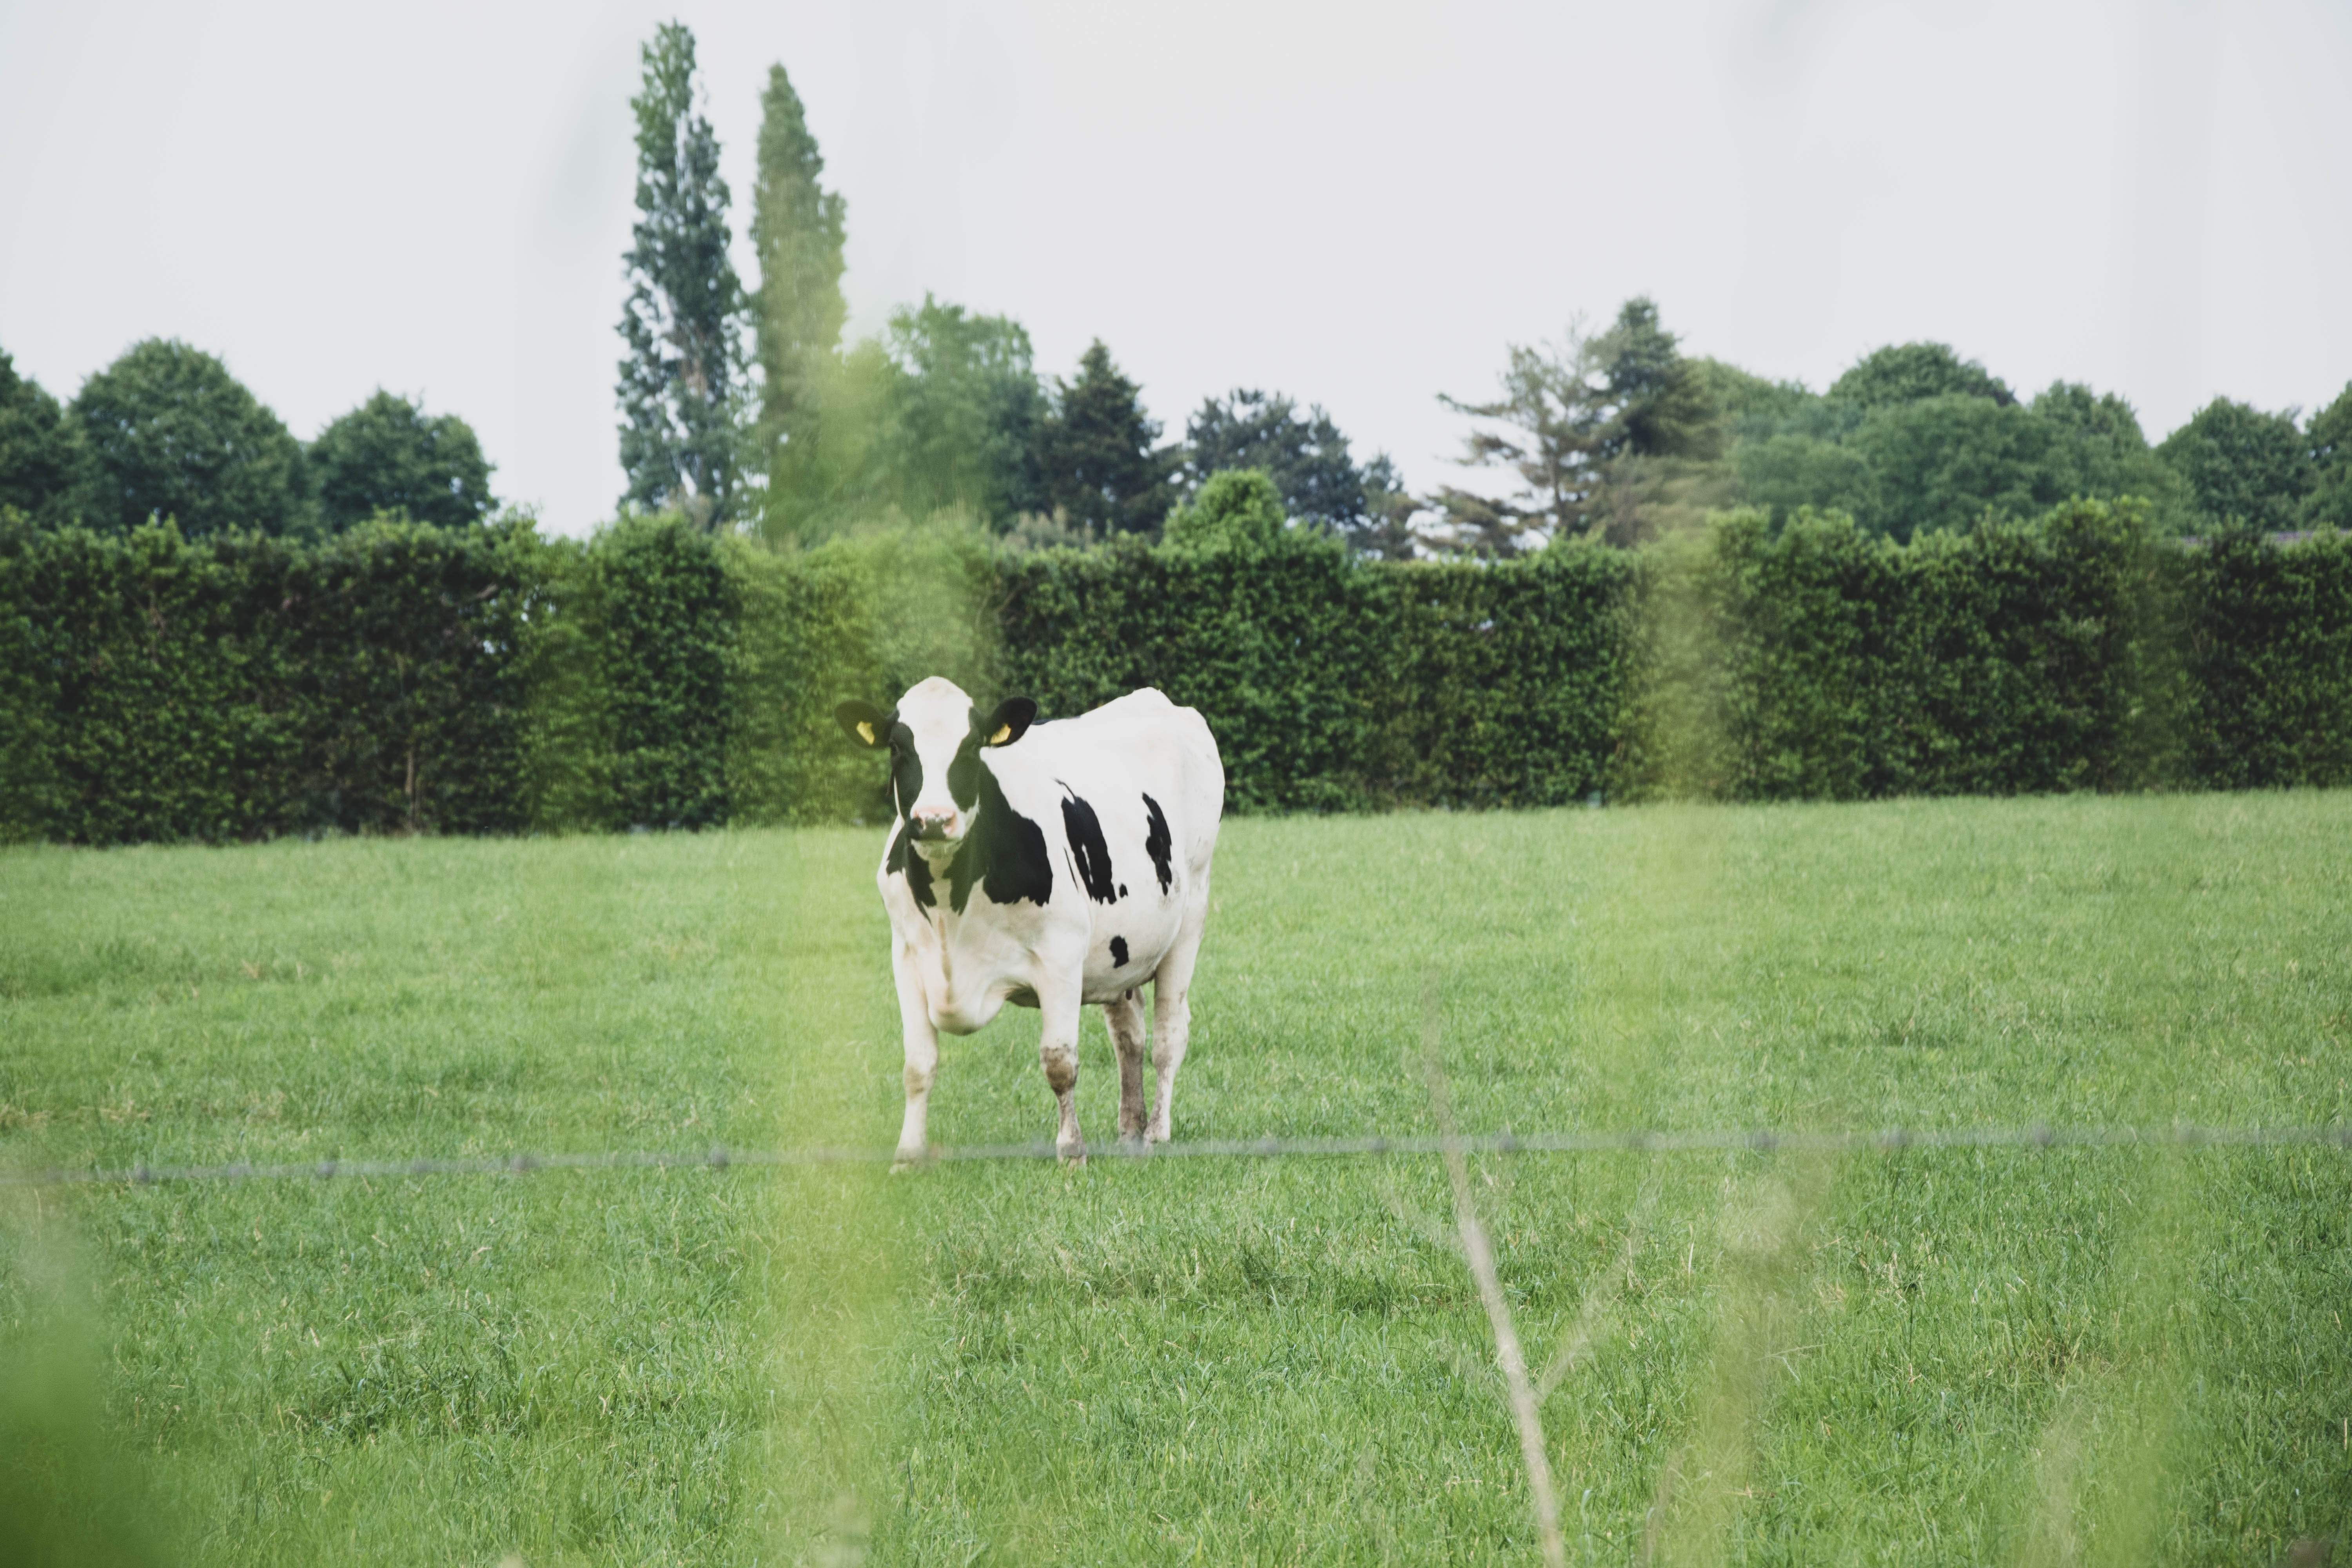 cow standing on field during daytime